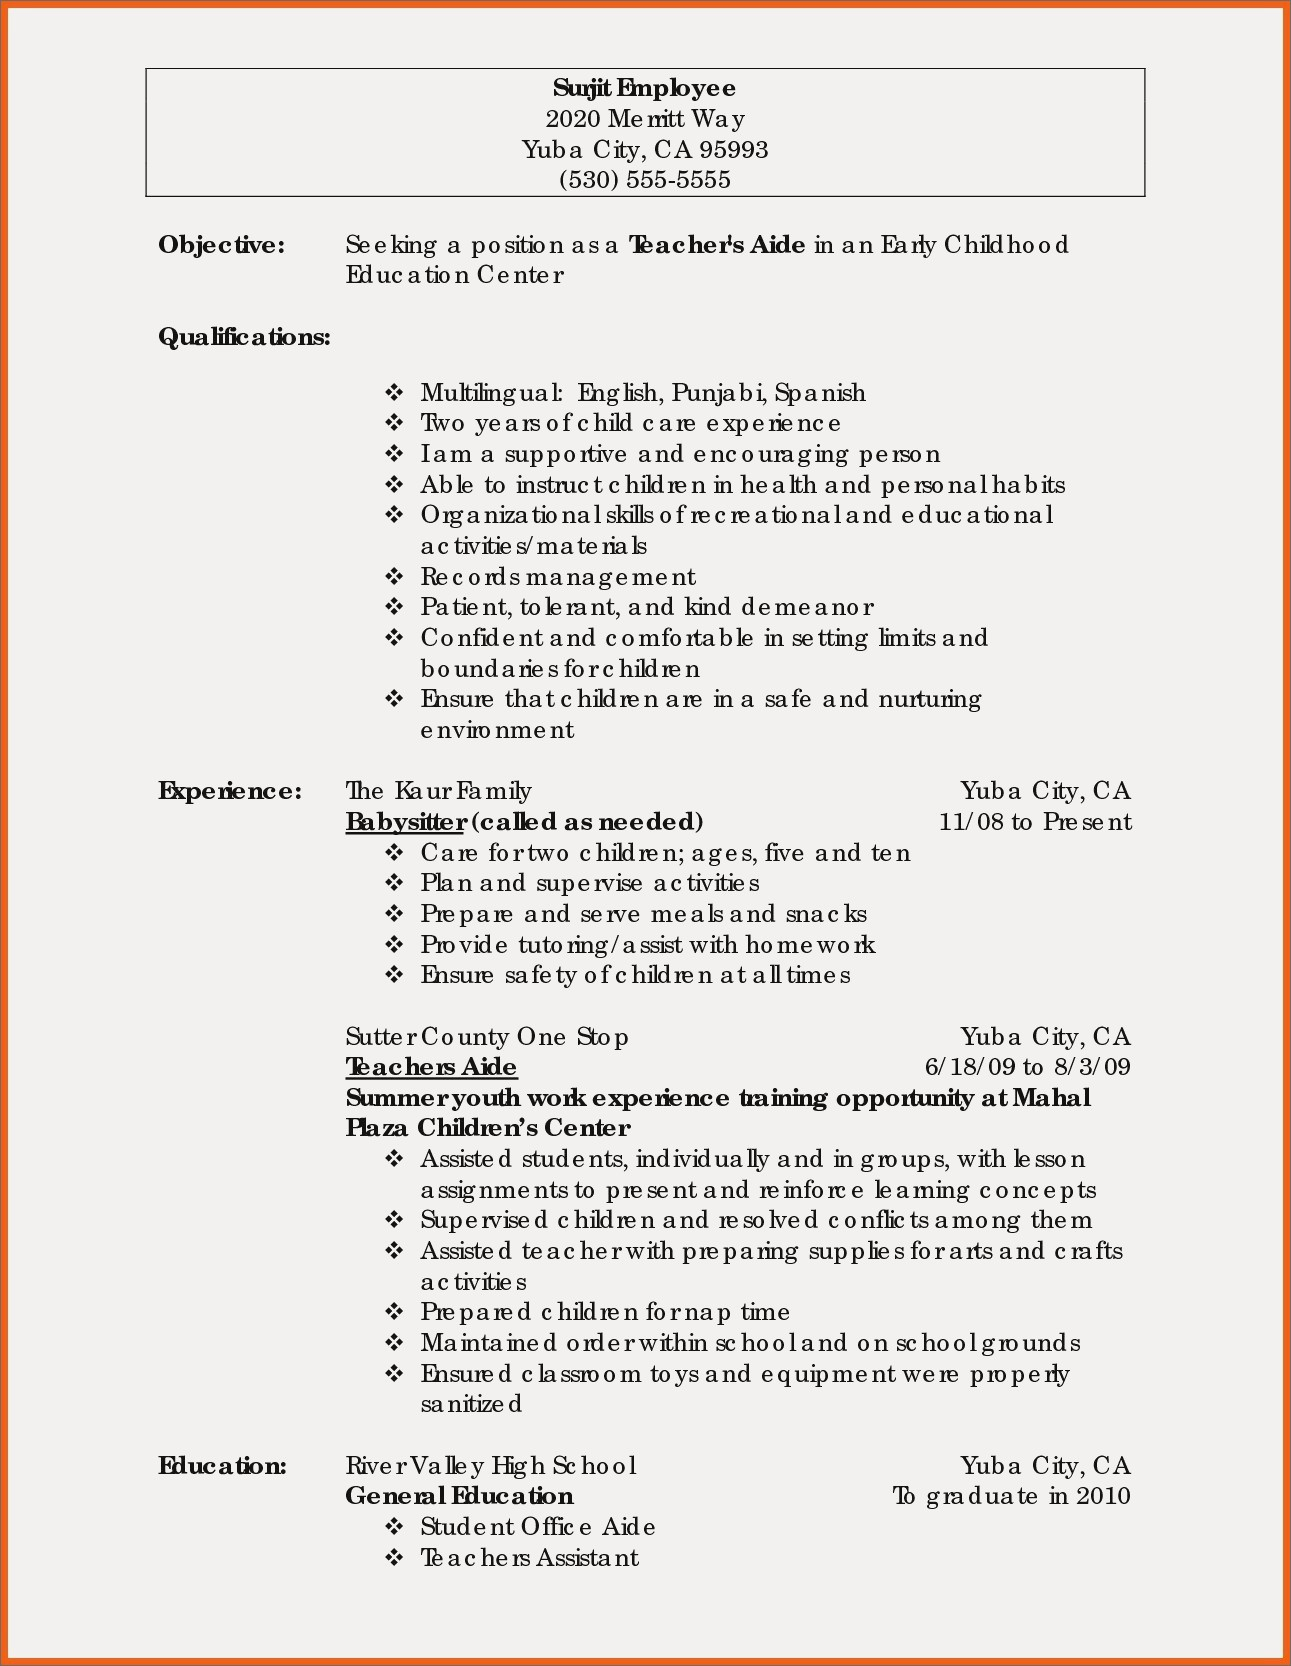 Professional Teacher Resume - Early Childhood Education Resume Samples New Teacher Resume Example